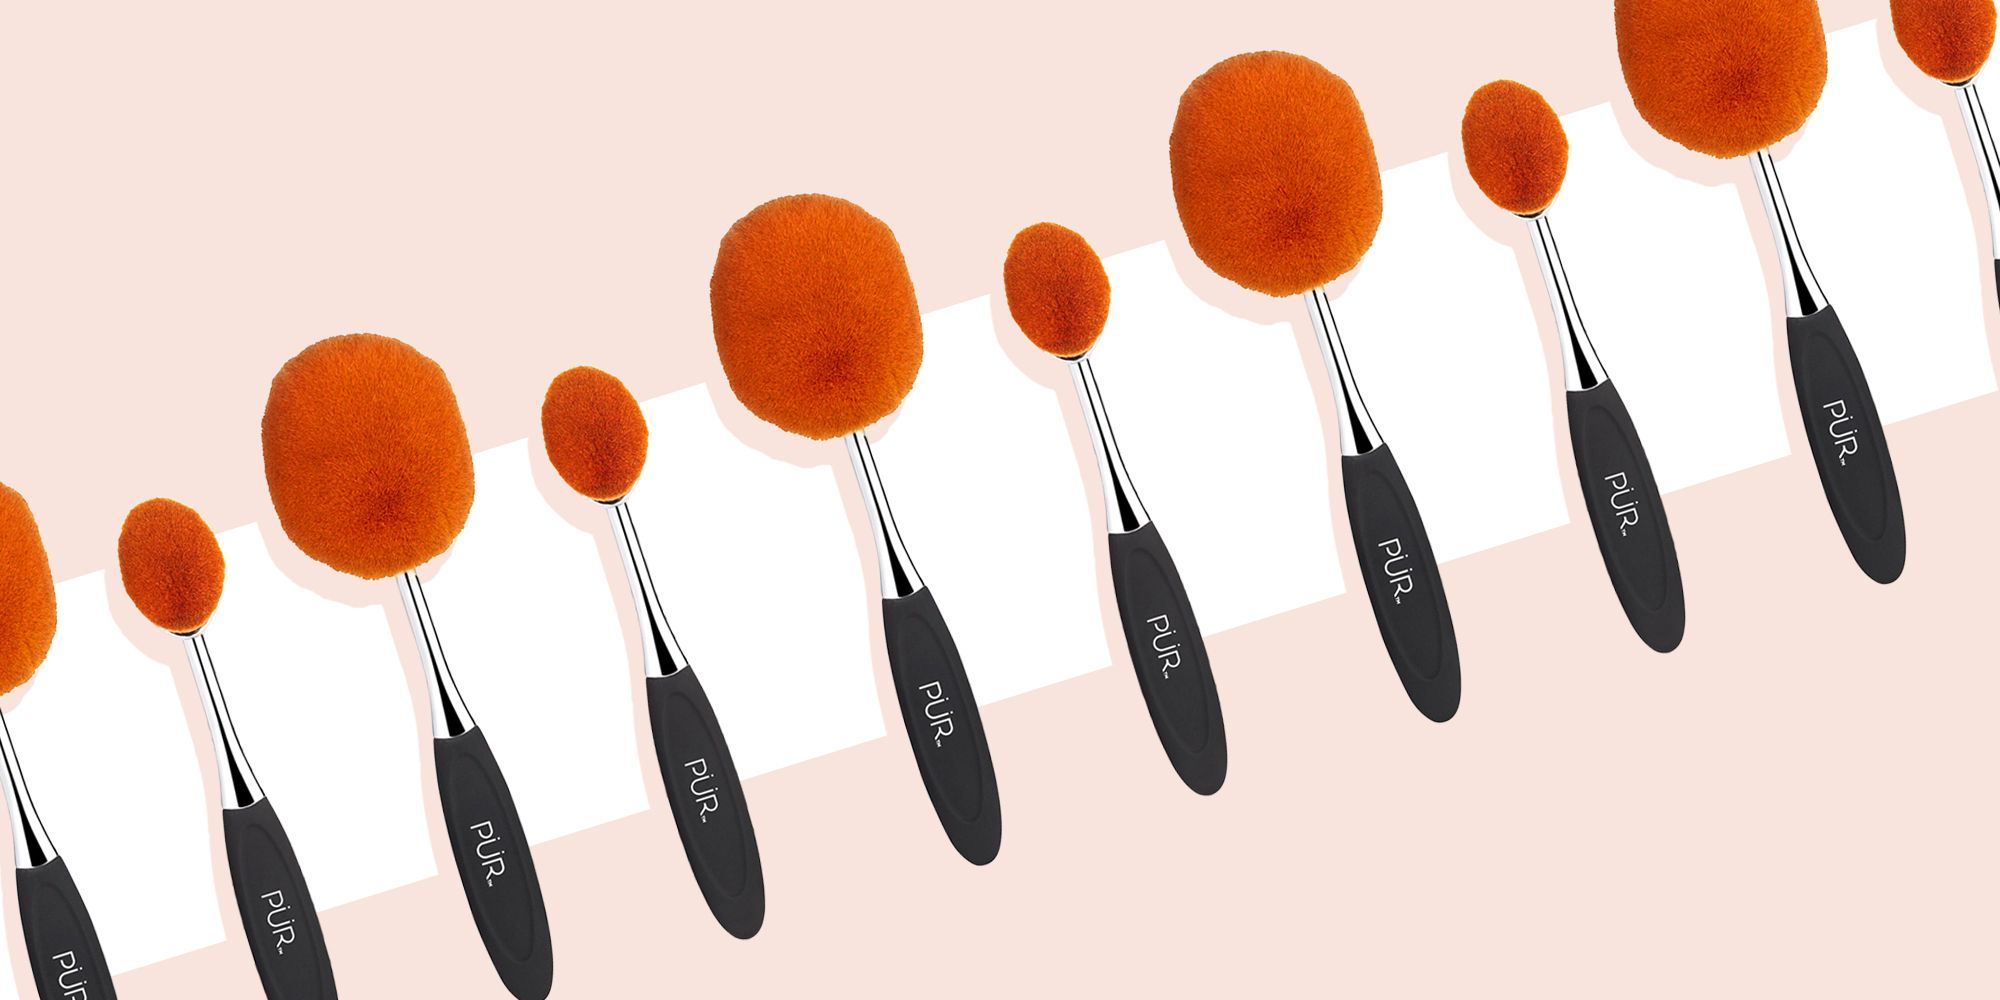 How To Use Oval Makeup Brushes Oval Makeup Brush Tutorials For Contour Foundation Blush